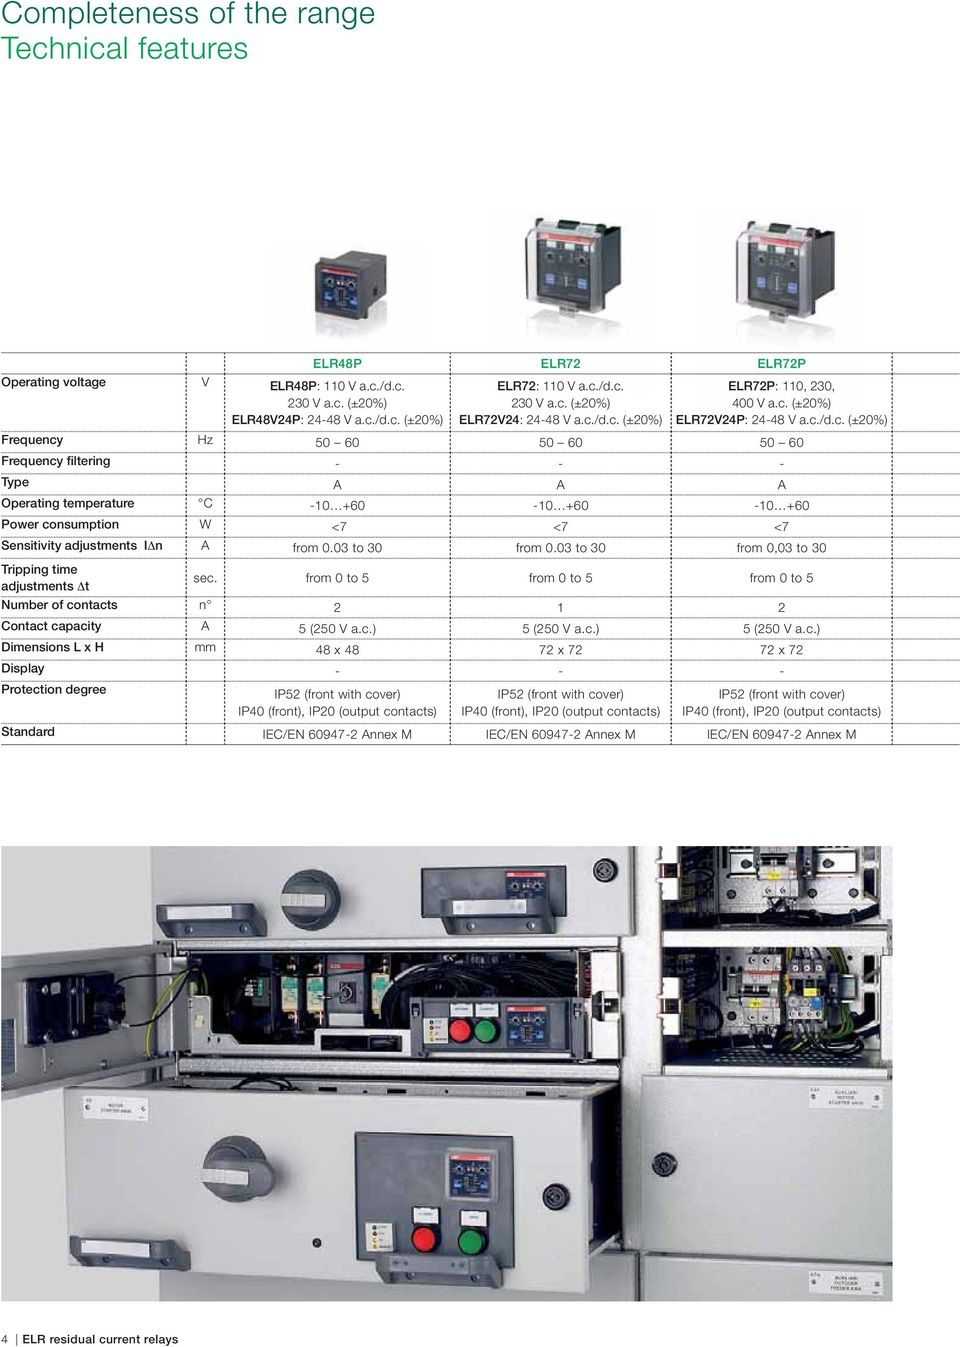 Elr Abb Range Of Front Panel Residual Current Relays Protection Air Circuit Breaker Wiring Diagram 03 To 30 From 003 Tripping Time Adjustments